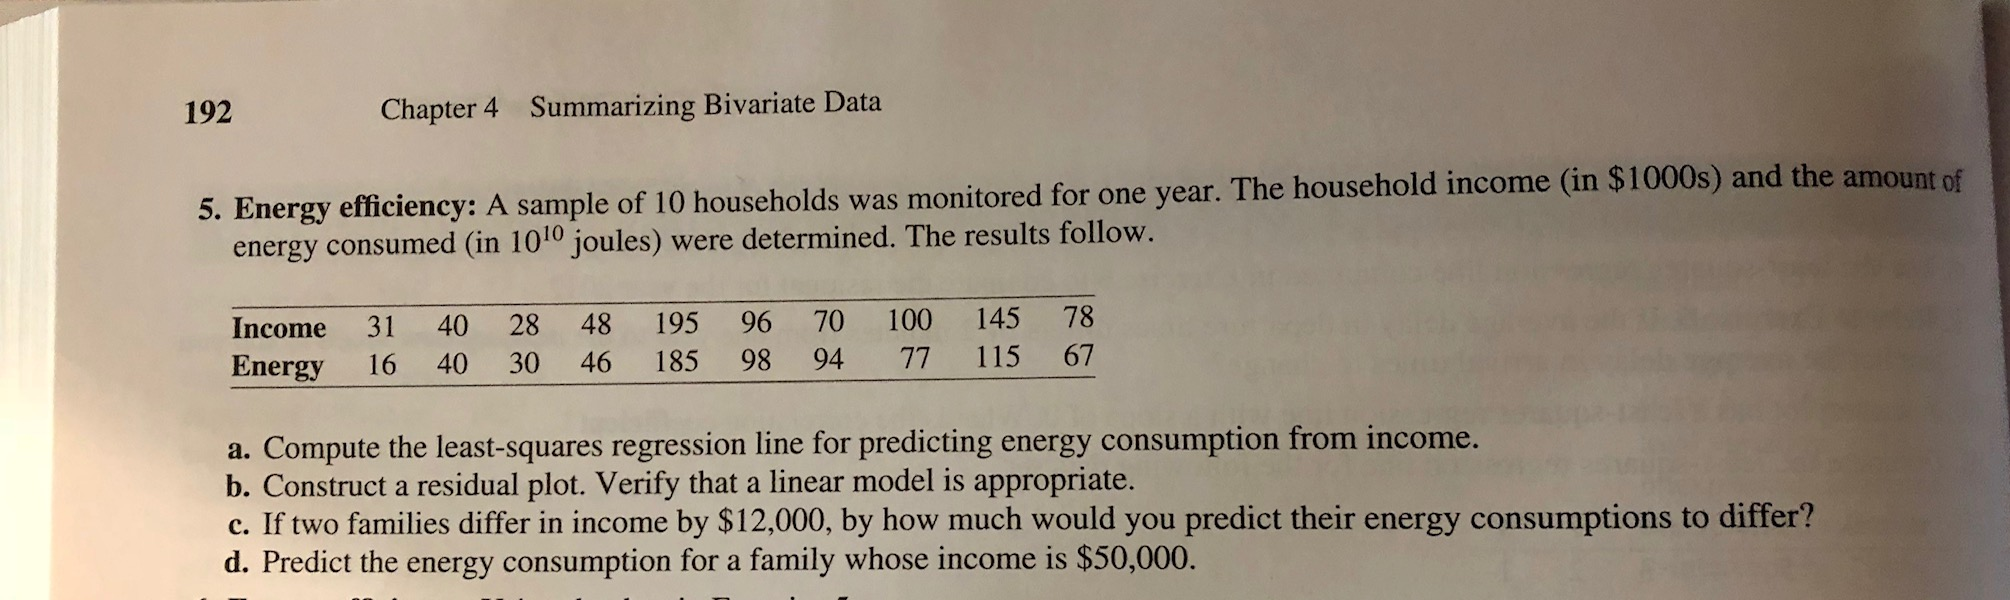 192 Chapter 4 Summarizing Bivariate Data 5. Energy effici ency: A sample of 10 households was monitored for one year. The household income (in $1000s) and the amount of energy consumed (in 1010 joules) were determined. The results follow. Income 31 40 28 48 195 96 70 100 145 78 Energy 16 40 30 46 185 98 94 77 115 67 a. Compute the least-squares regression line for predicting energy consumption from income. b. Construct a residual plot. Verify that a linear model is appropriate. c. If two families differ in income by $12,000, by how much would you predict their energy consumptions to differ? d. Predict the energy consumption for a family whose income is $50,000.